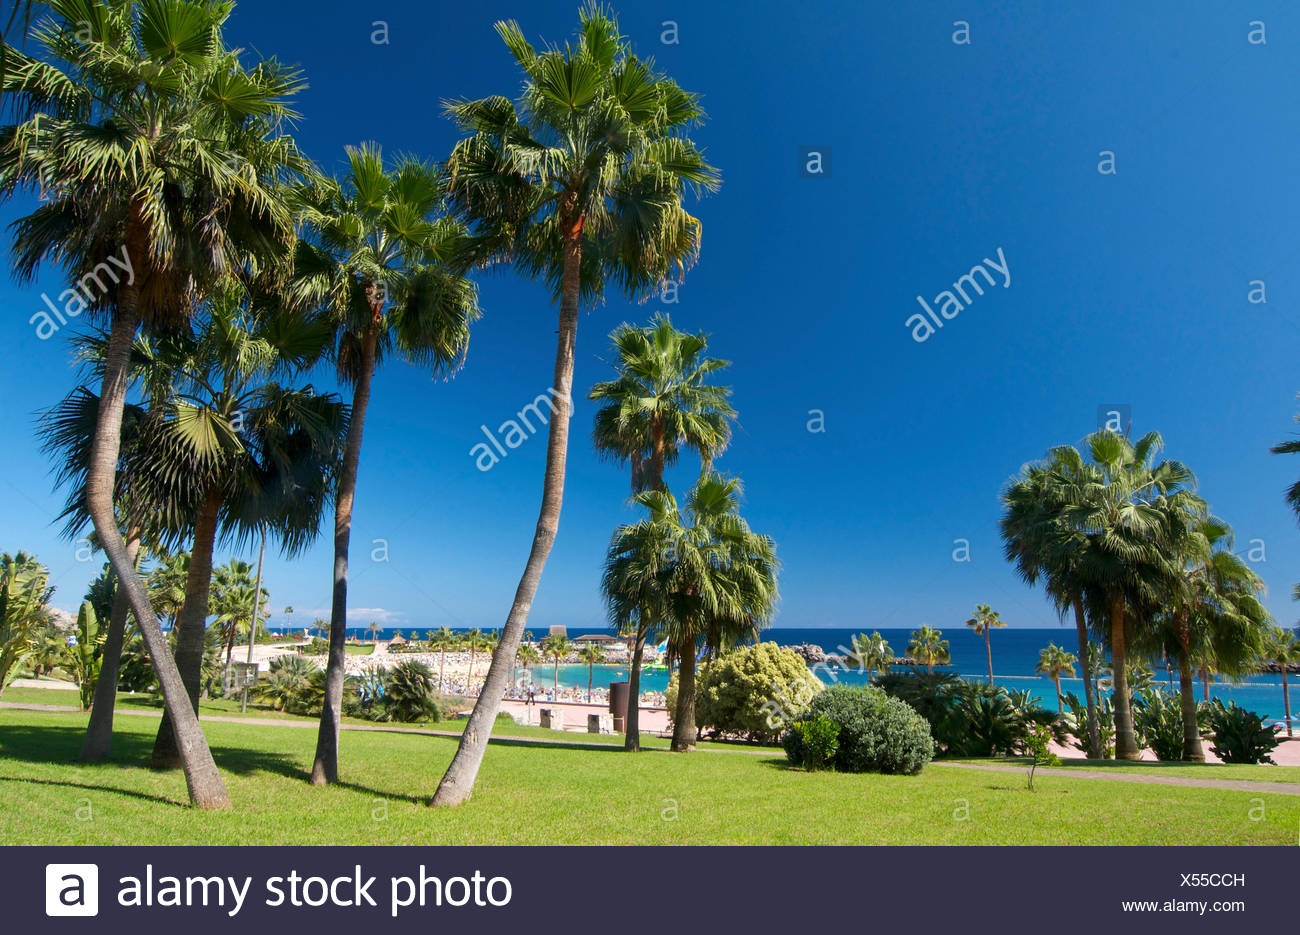 Playa Amadores Beach in Puerto Rico, Grand Canary, Canary Islands, Spain - Stock Image